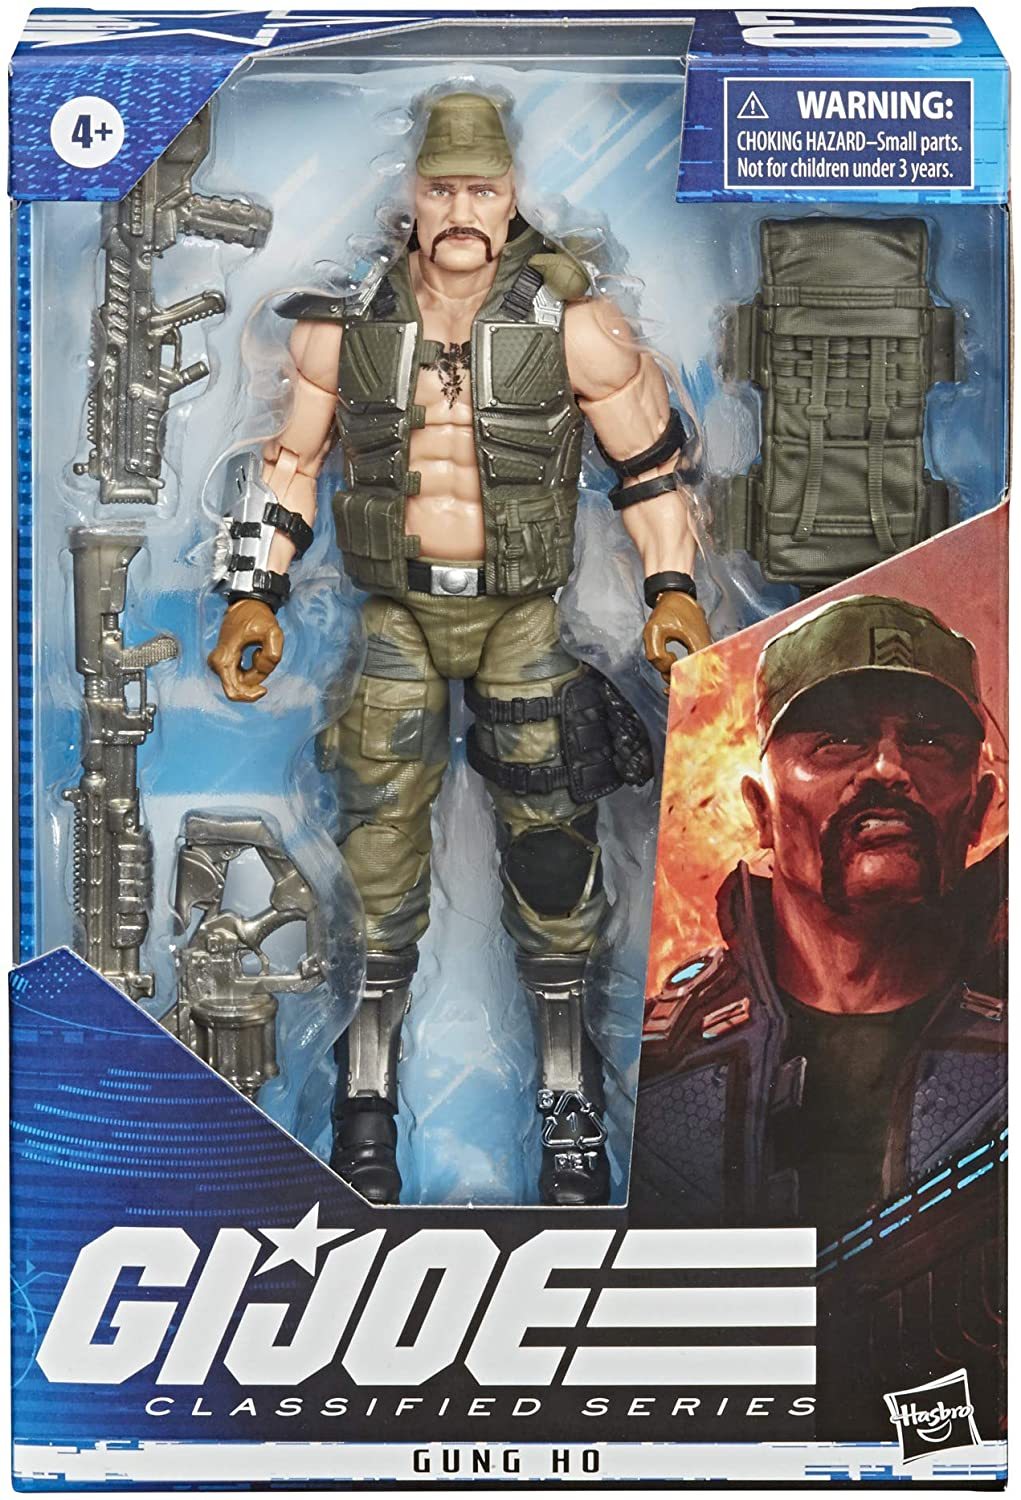 Hasbro GI Joe: Classified Series - Gung Ho Action Figure